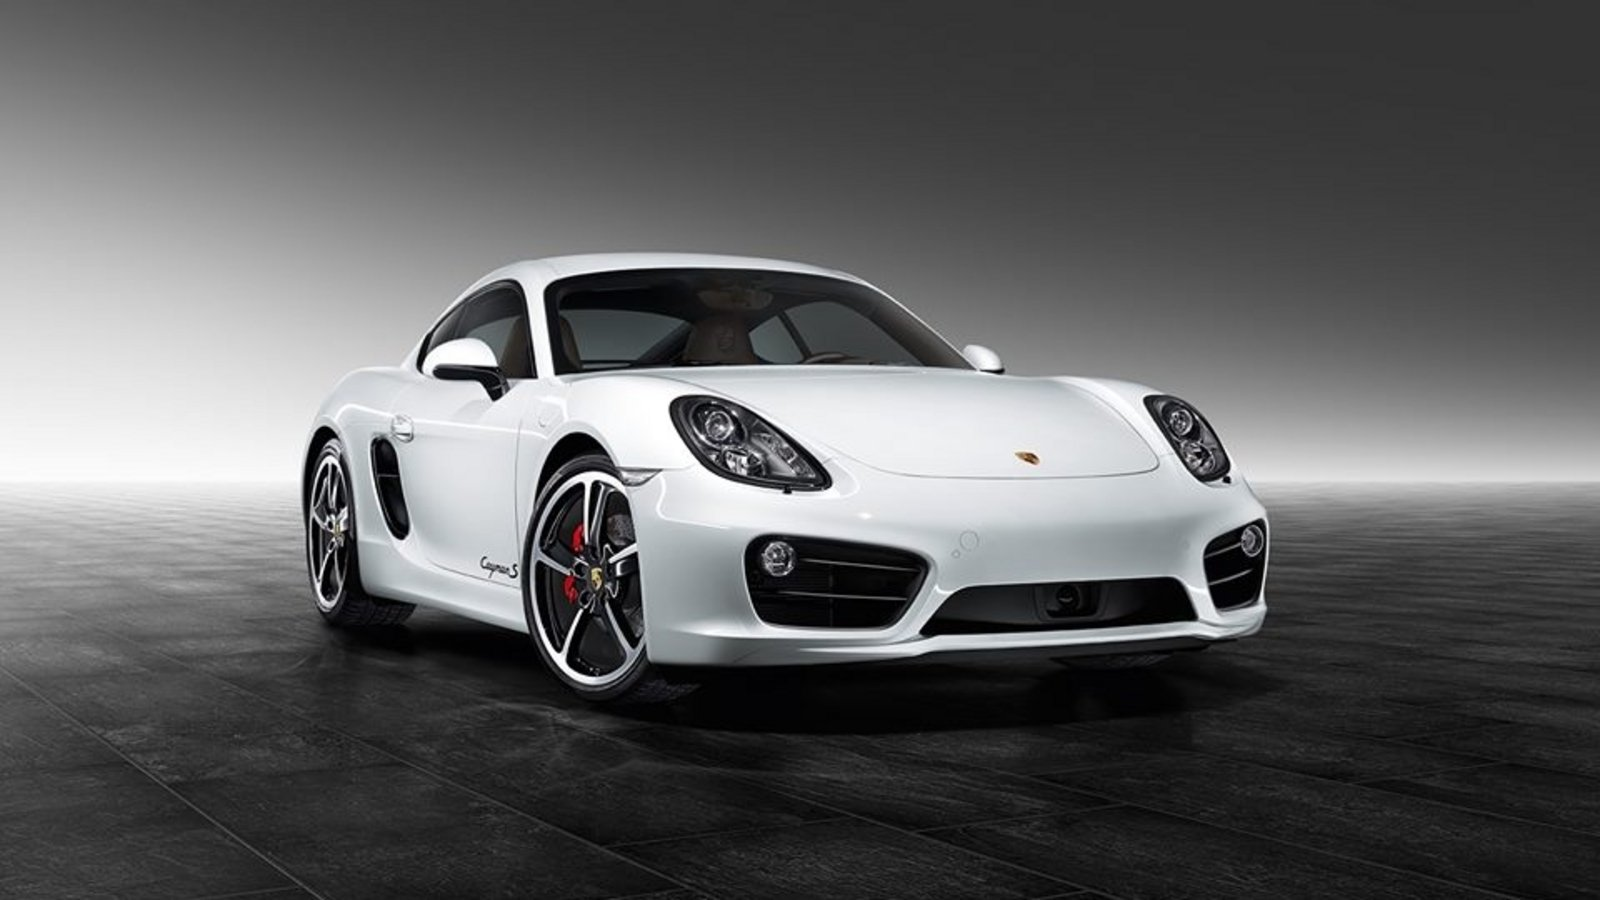 2016 porsche cayman s by porsche exclusive review top speed. Black Bedroom Furniture Sets. Home Design Ideas